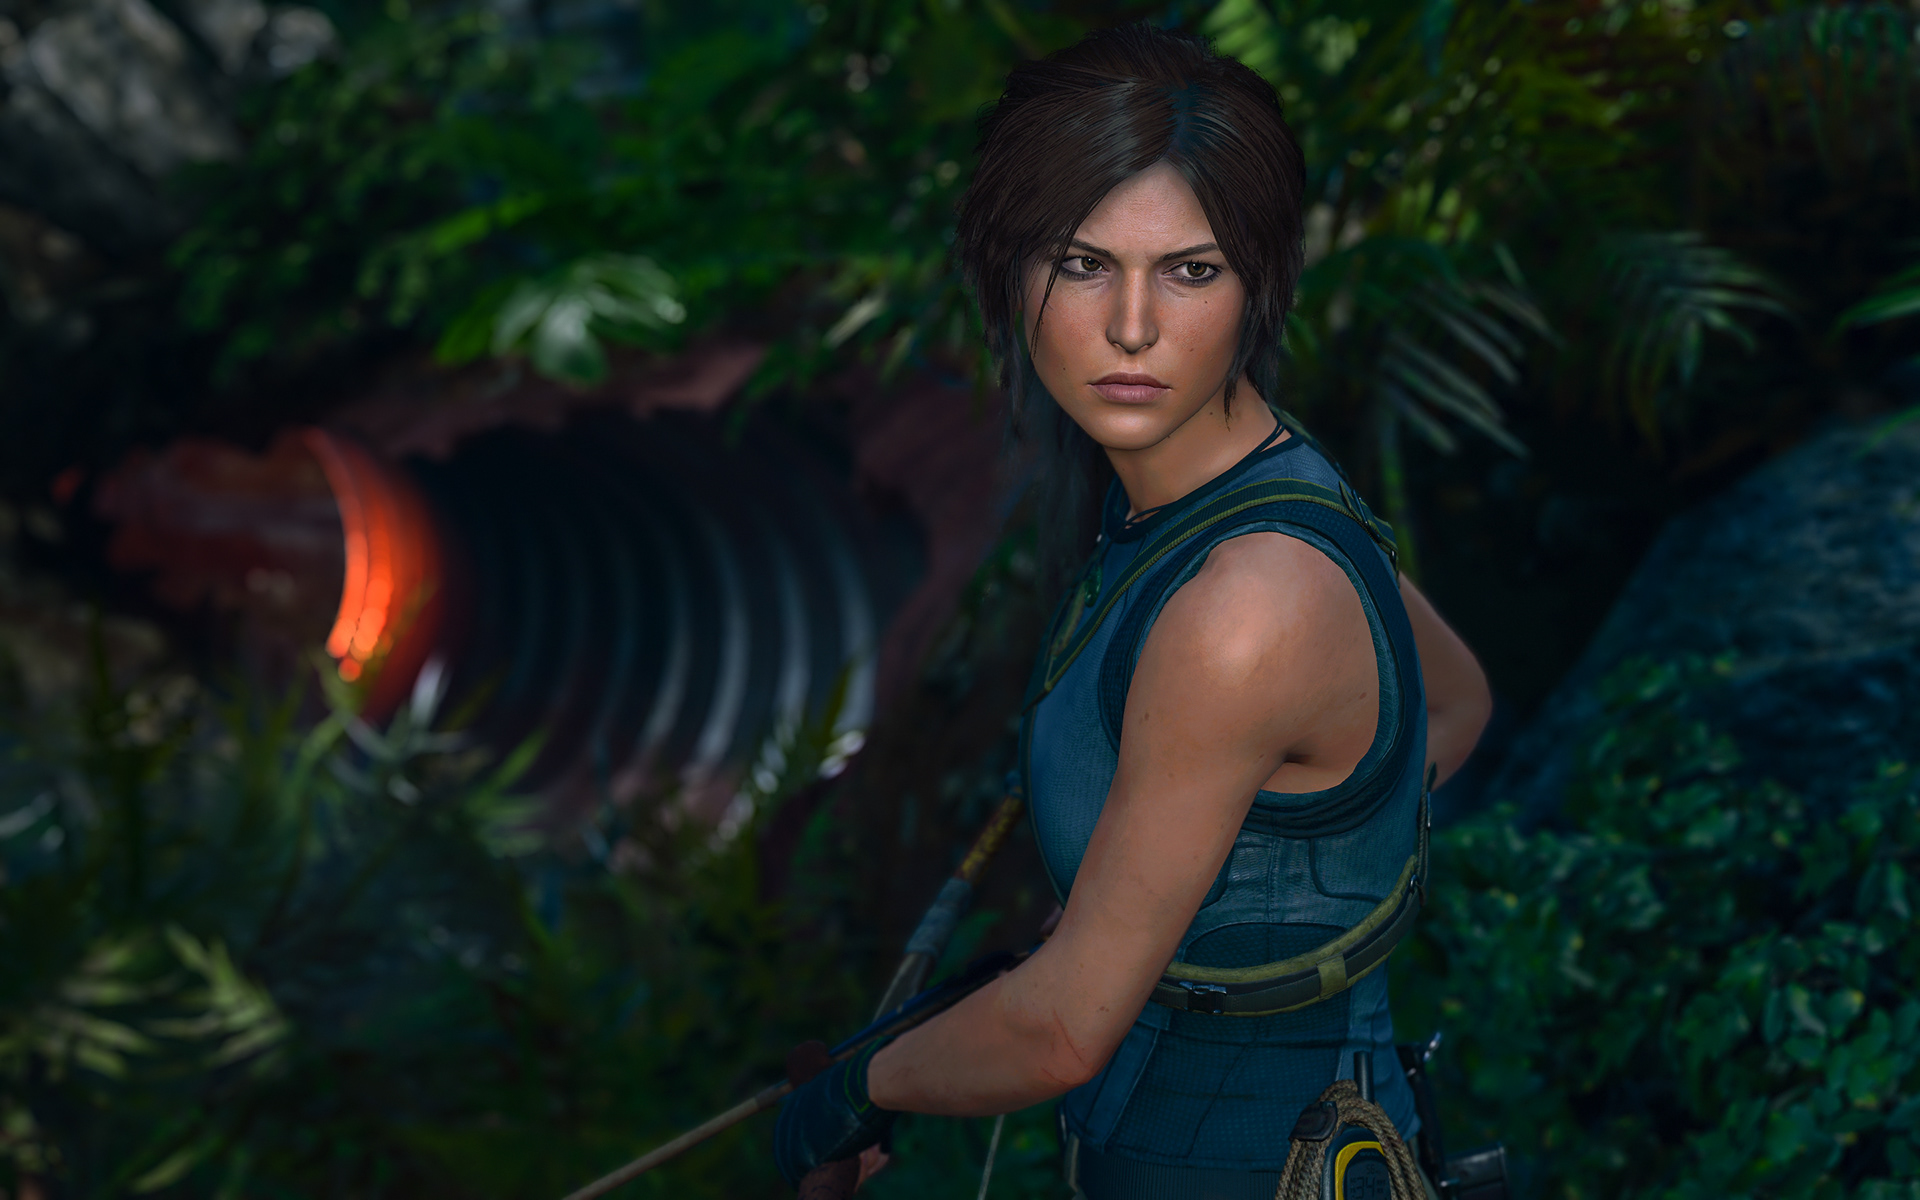 Frans Bouma - Shadow of the Tomb Raider revisited